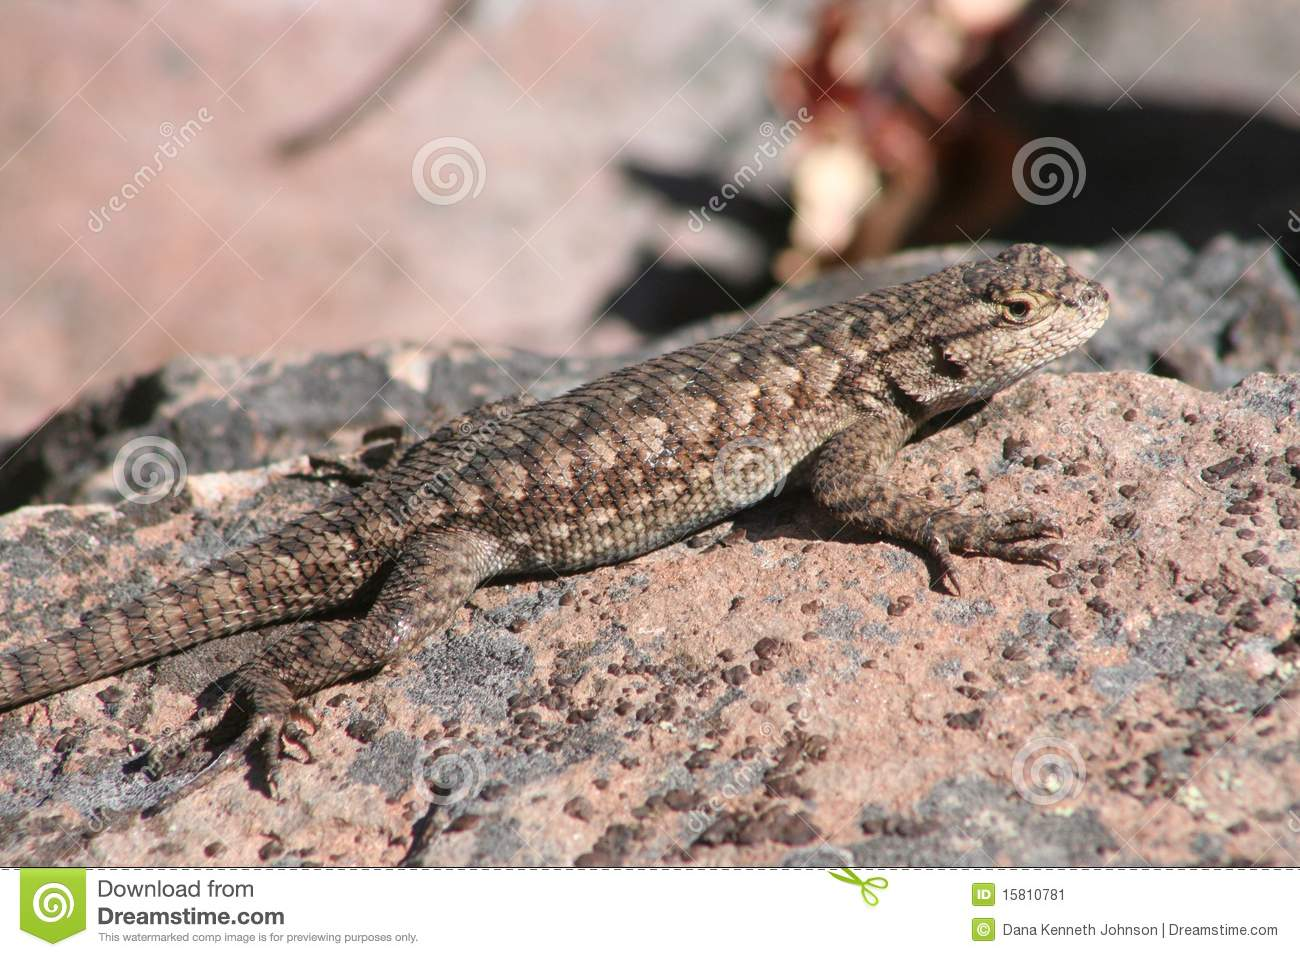 Western Fence Lizard clipart #19, Download drawings